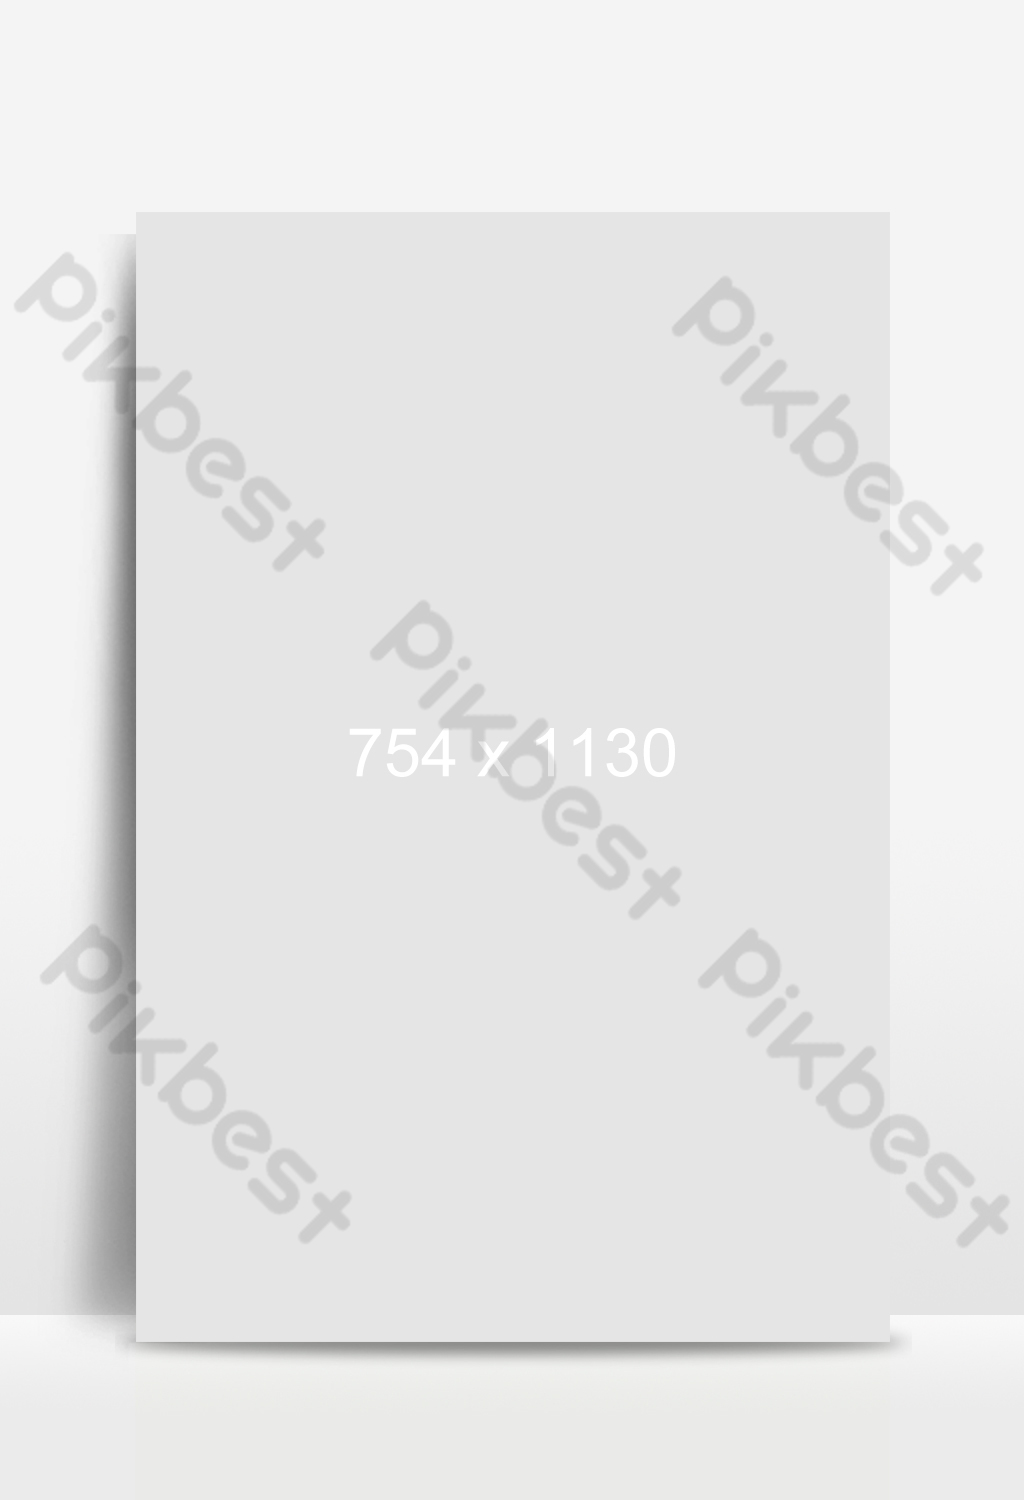 Fruit Banana Poster Background Image Backgrounds Psd Free Download Pikbest